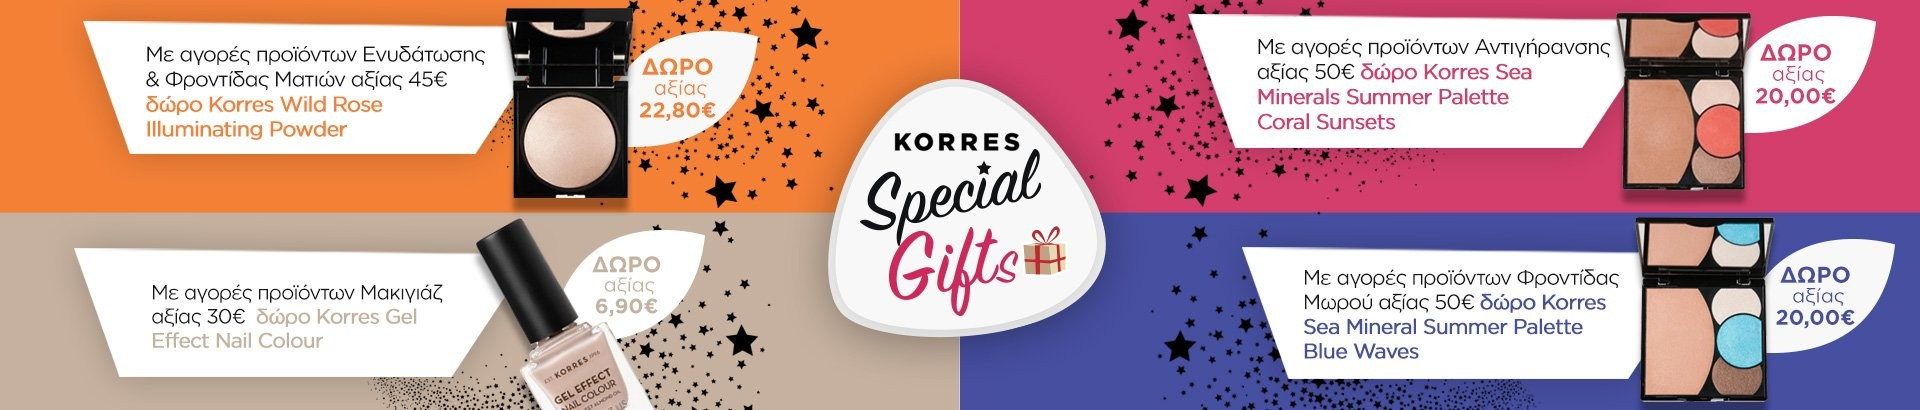 special gifts pharm24.gr